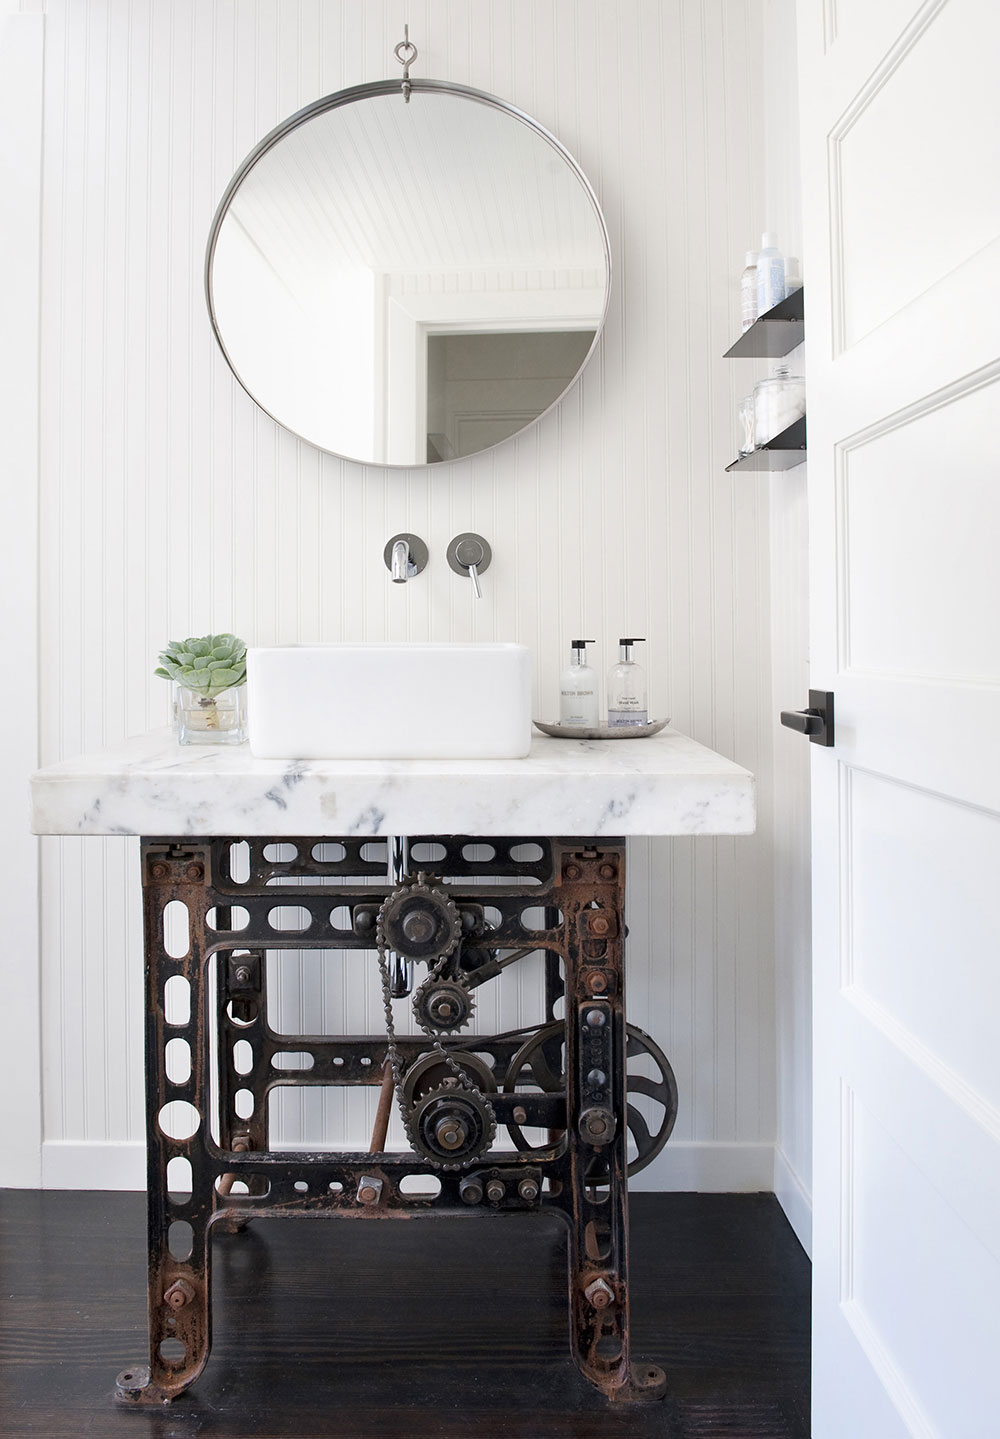 51 Industrial Style Bathrooms Plus Ideas U0026 Accessories You Can Copy From  Them